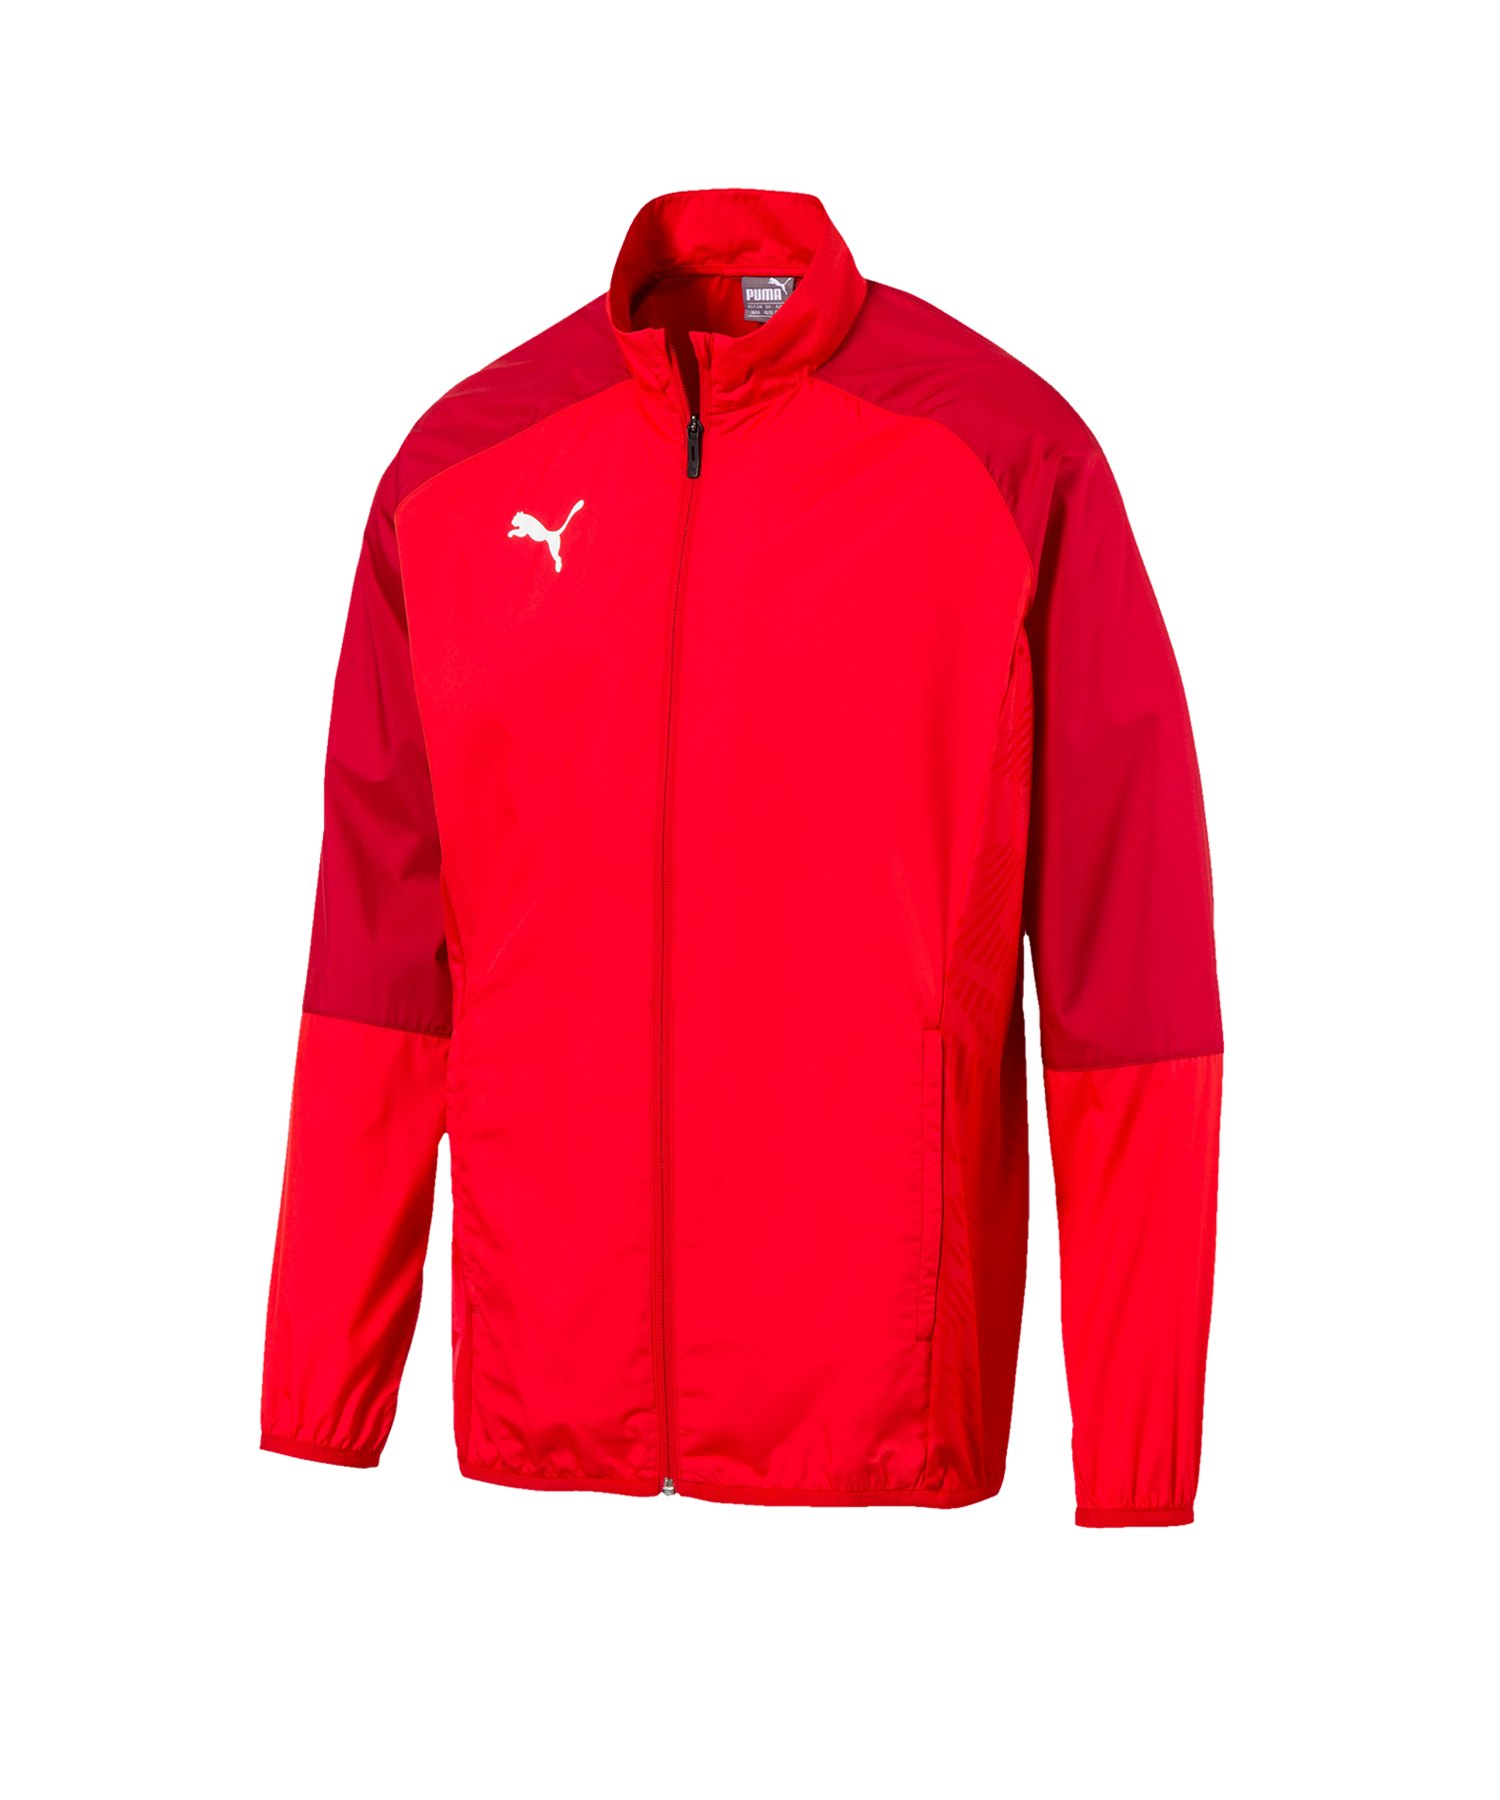 PUMA CUP Sideline Core Woven Jacket Kids Rot F01 - rot